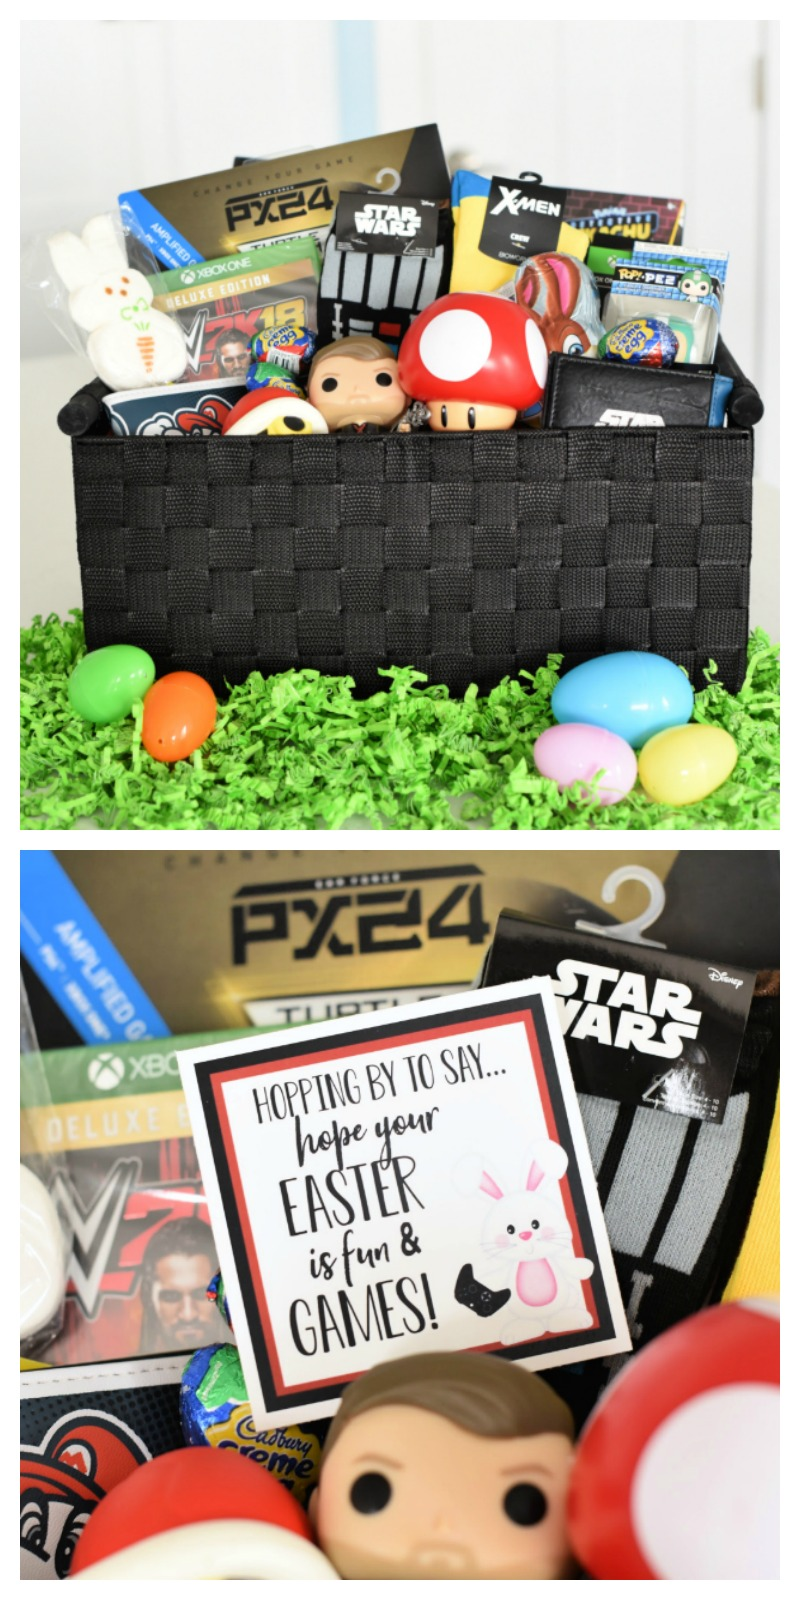 Fun Easter Baskets for Boys-Fill a basket with fun gaming items and add this Hopping by to Say Hope Your Easter is Filled with Fun and Games Tag! A great idea for boys or anyone who loves gaming. #easter #easterbaskets